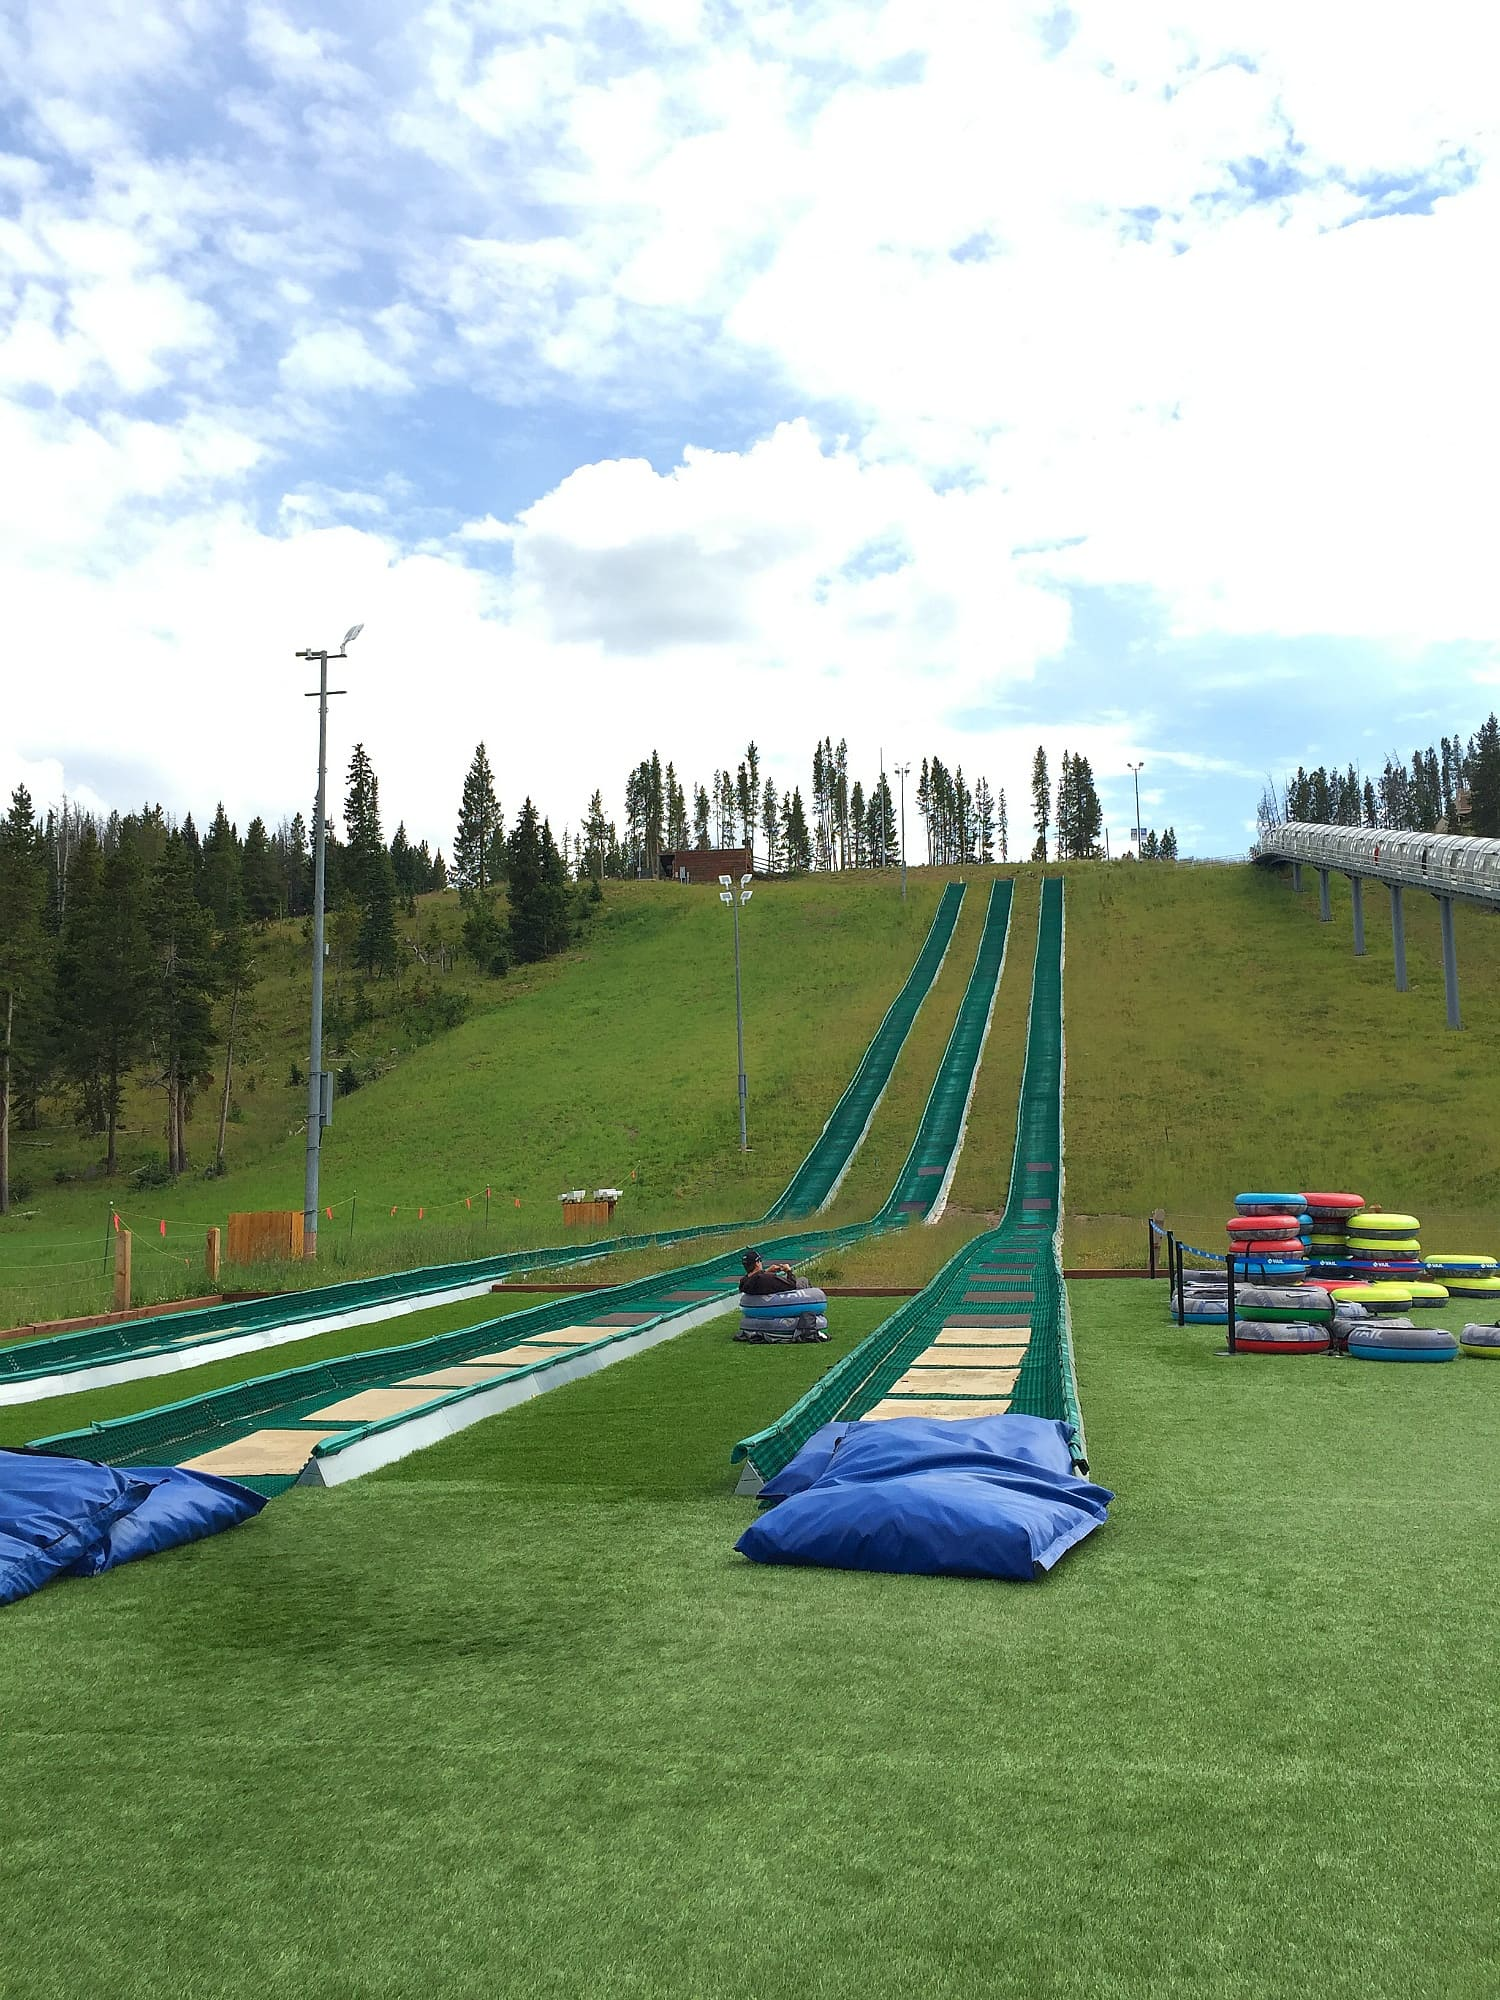 Go tubing in Vail in summer at Epic Discovery